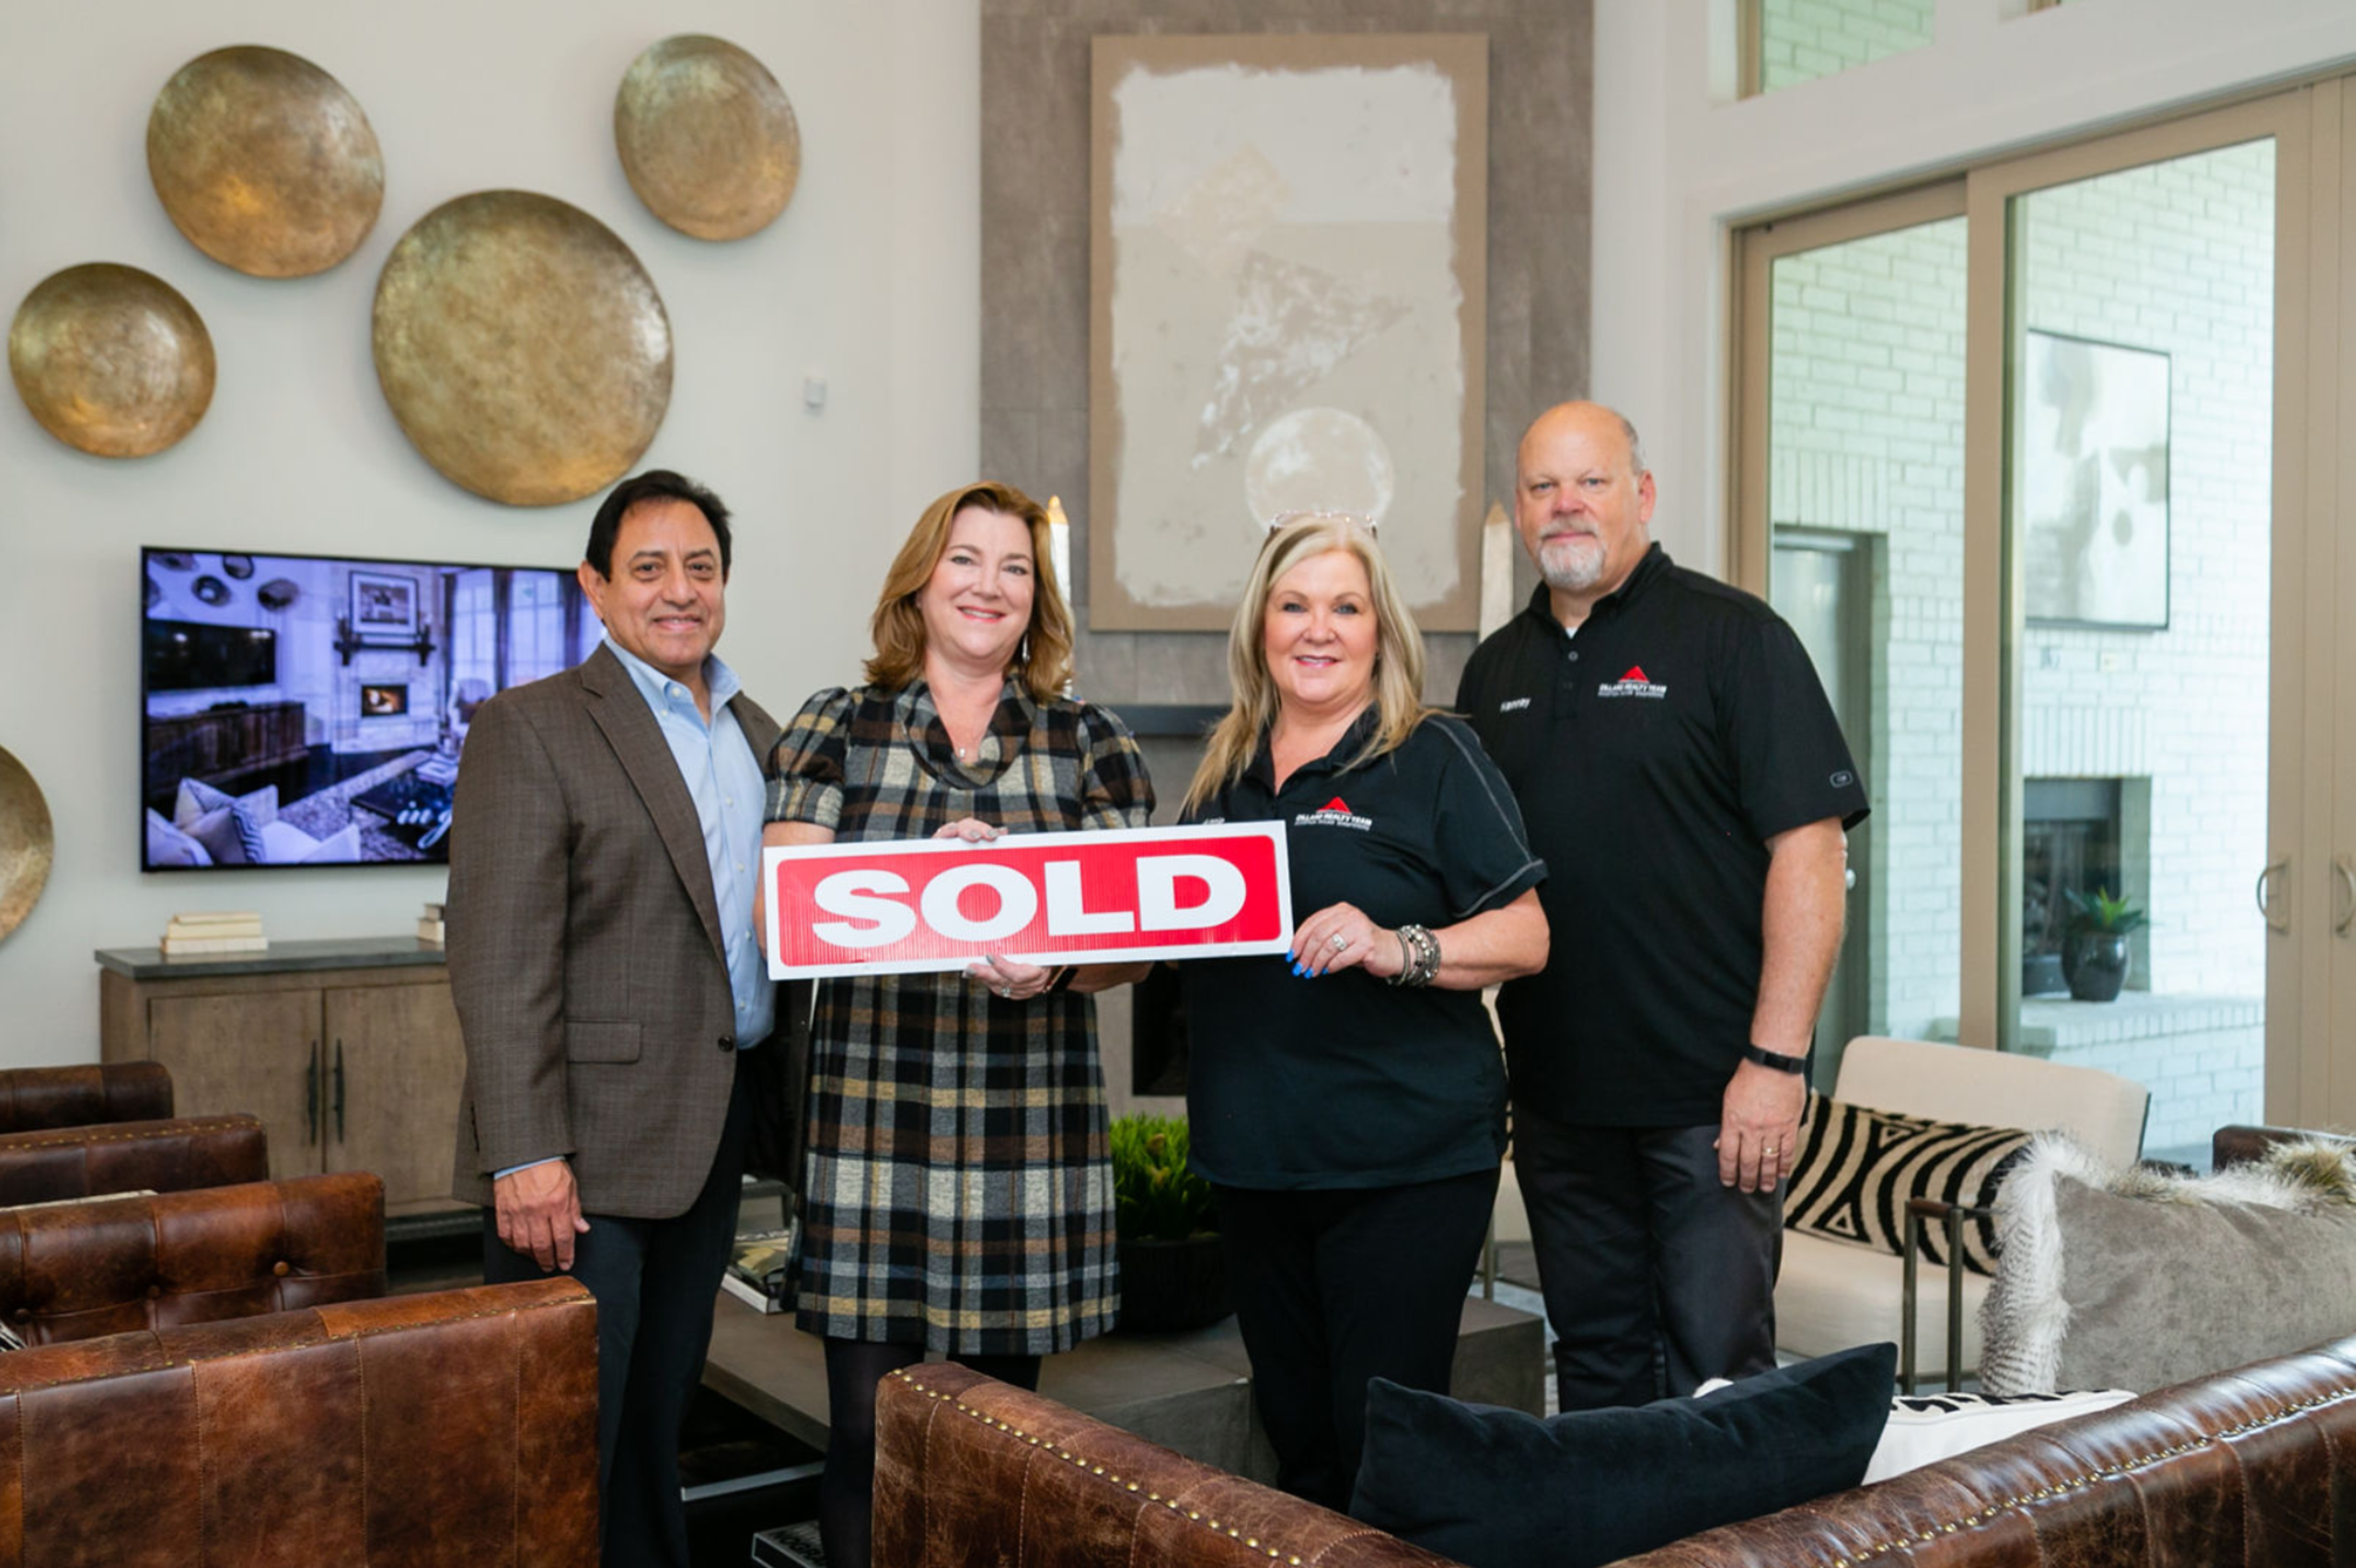 When you choose the Dillard Realty Team...You choose SOLD!,